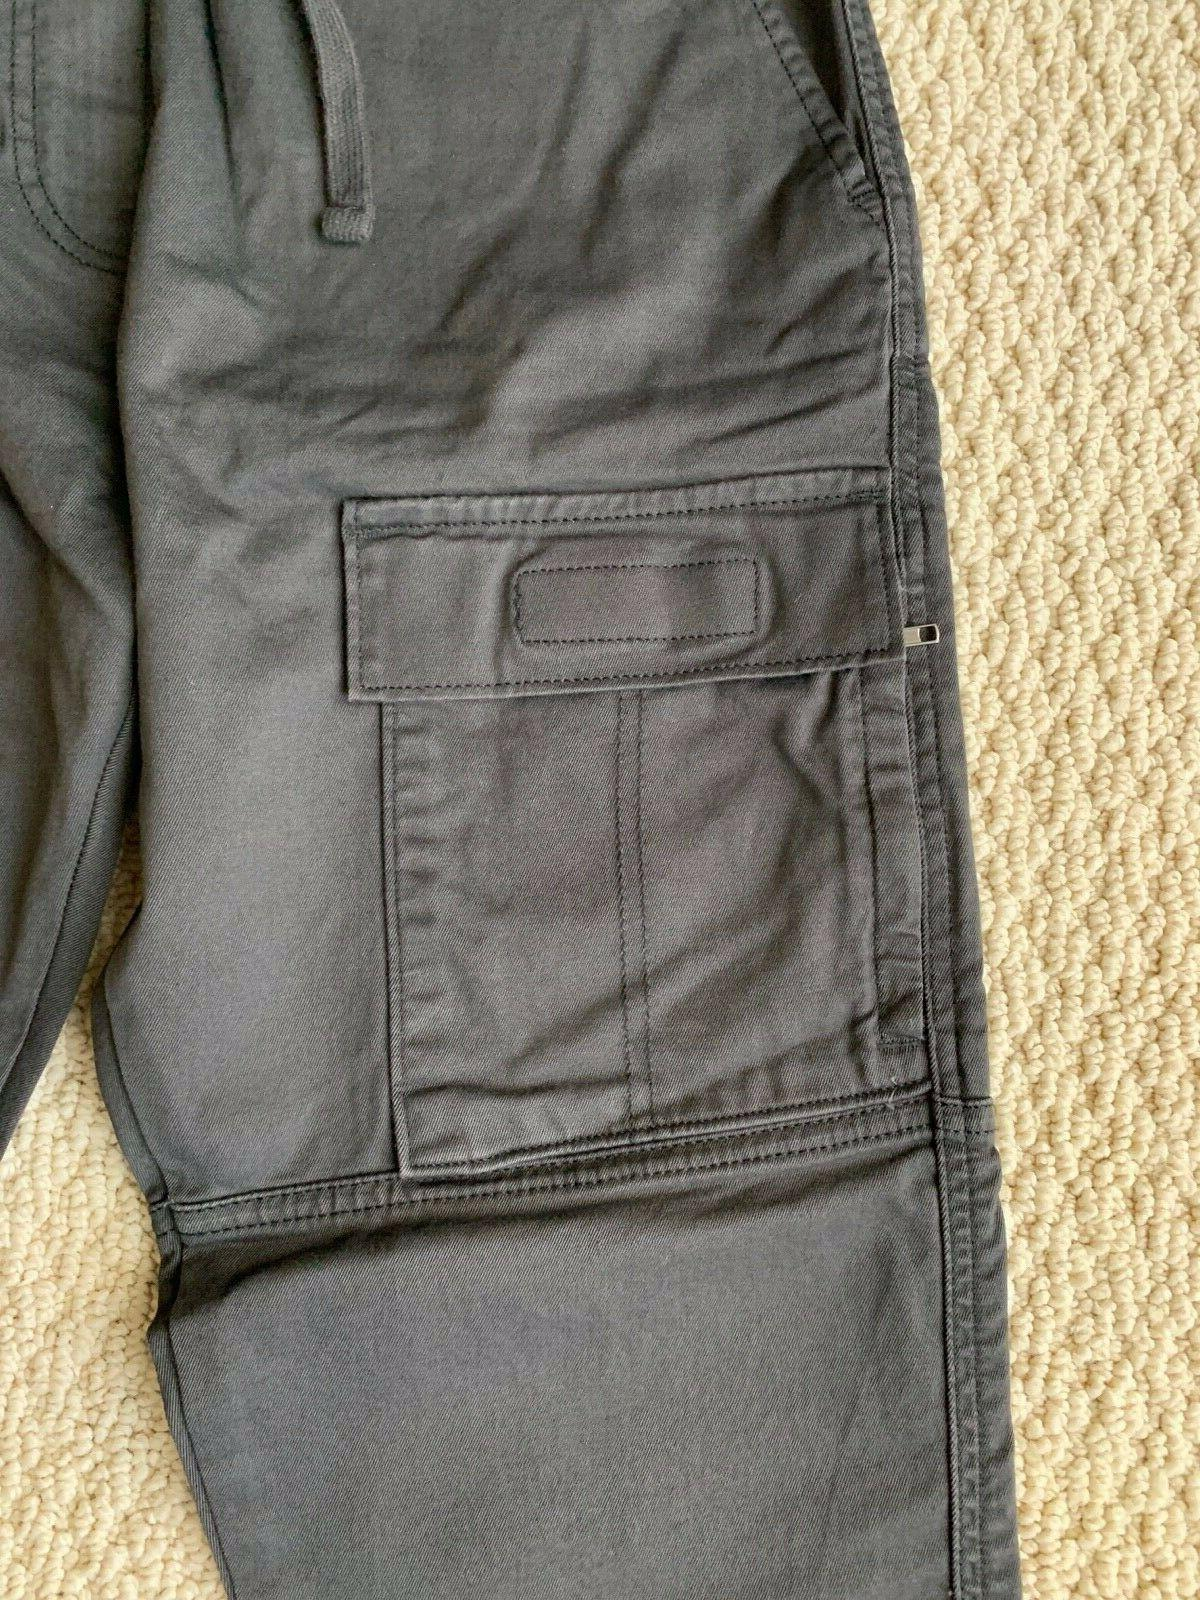 NWT Utility Cargo Pocket Tapered Jogger Pants